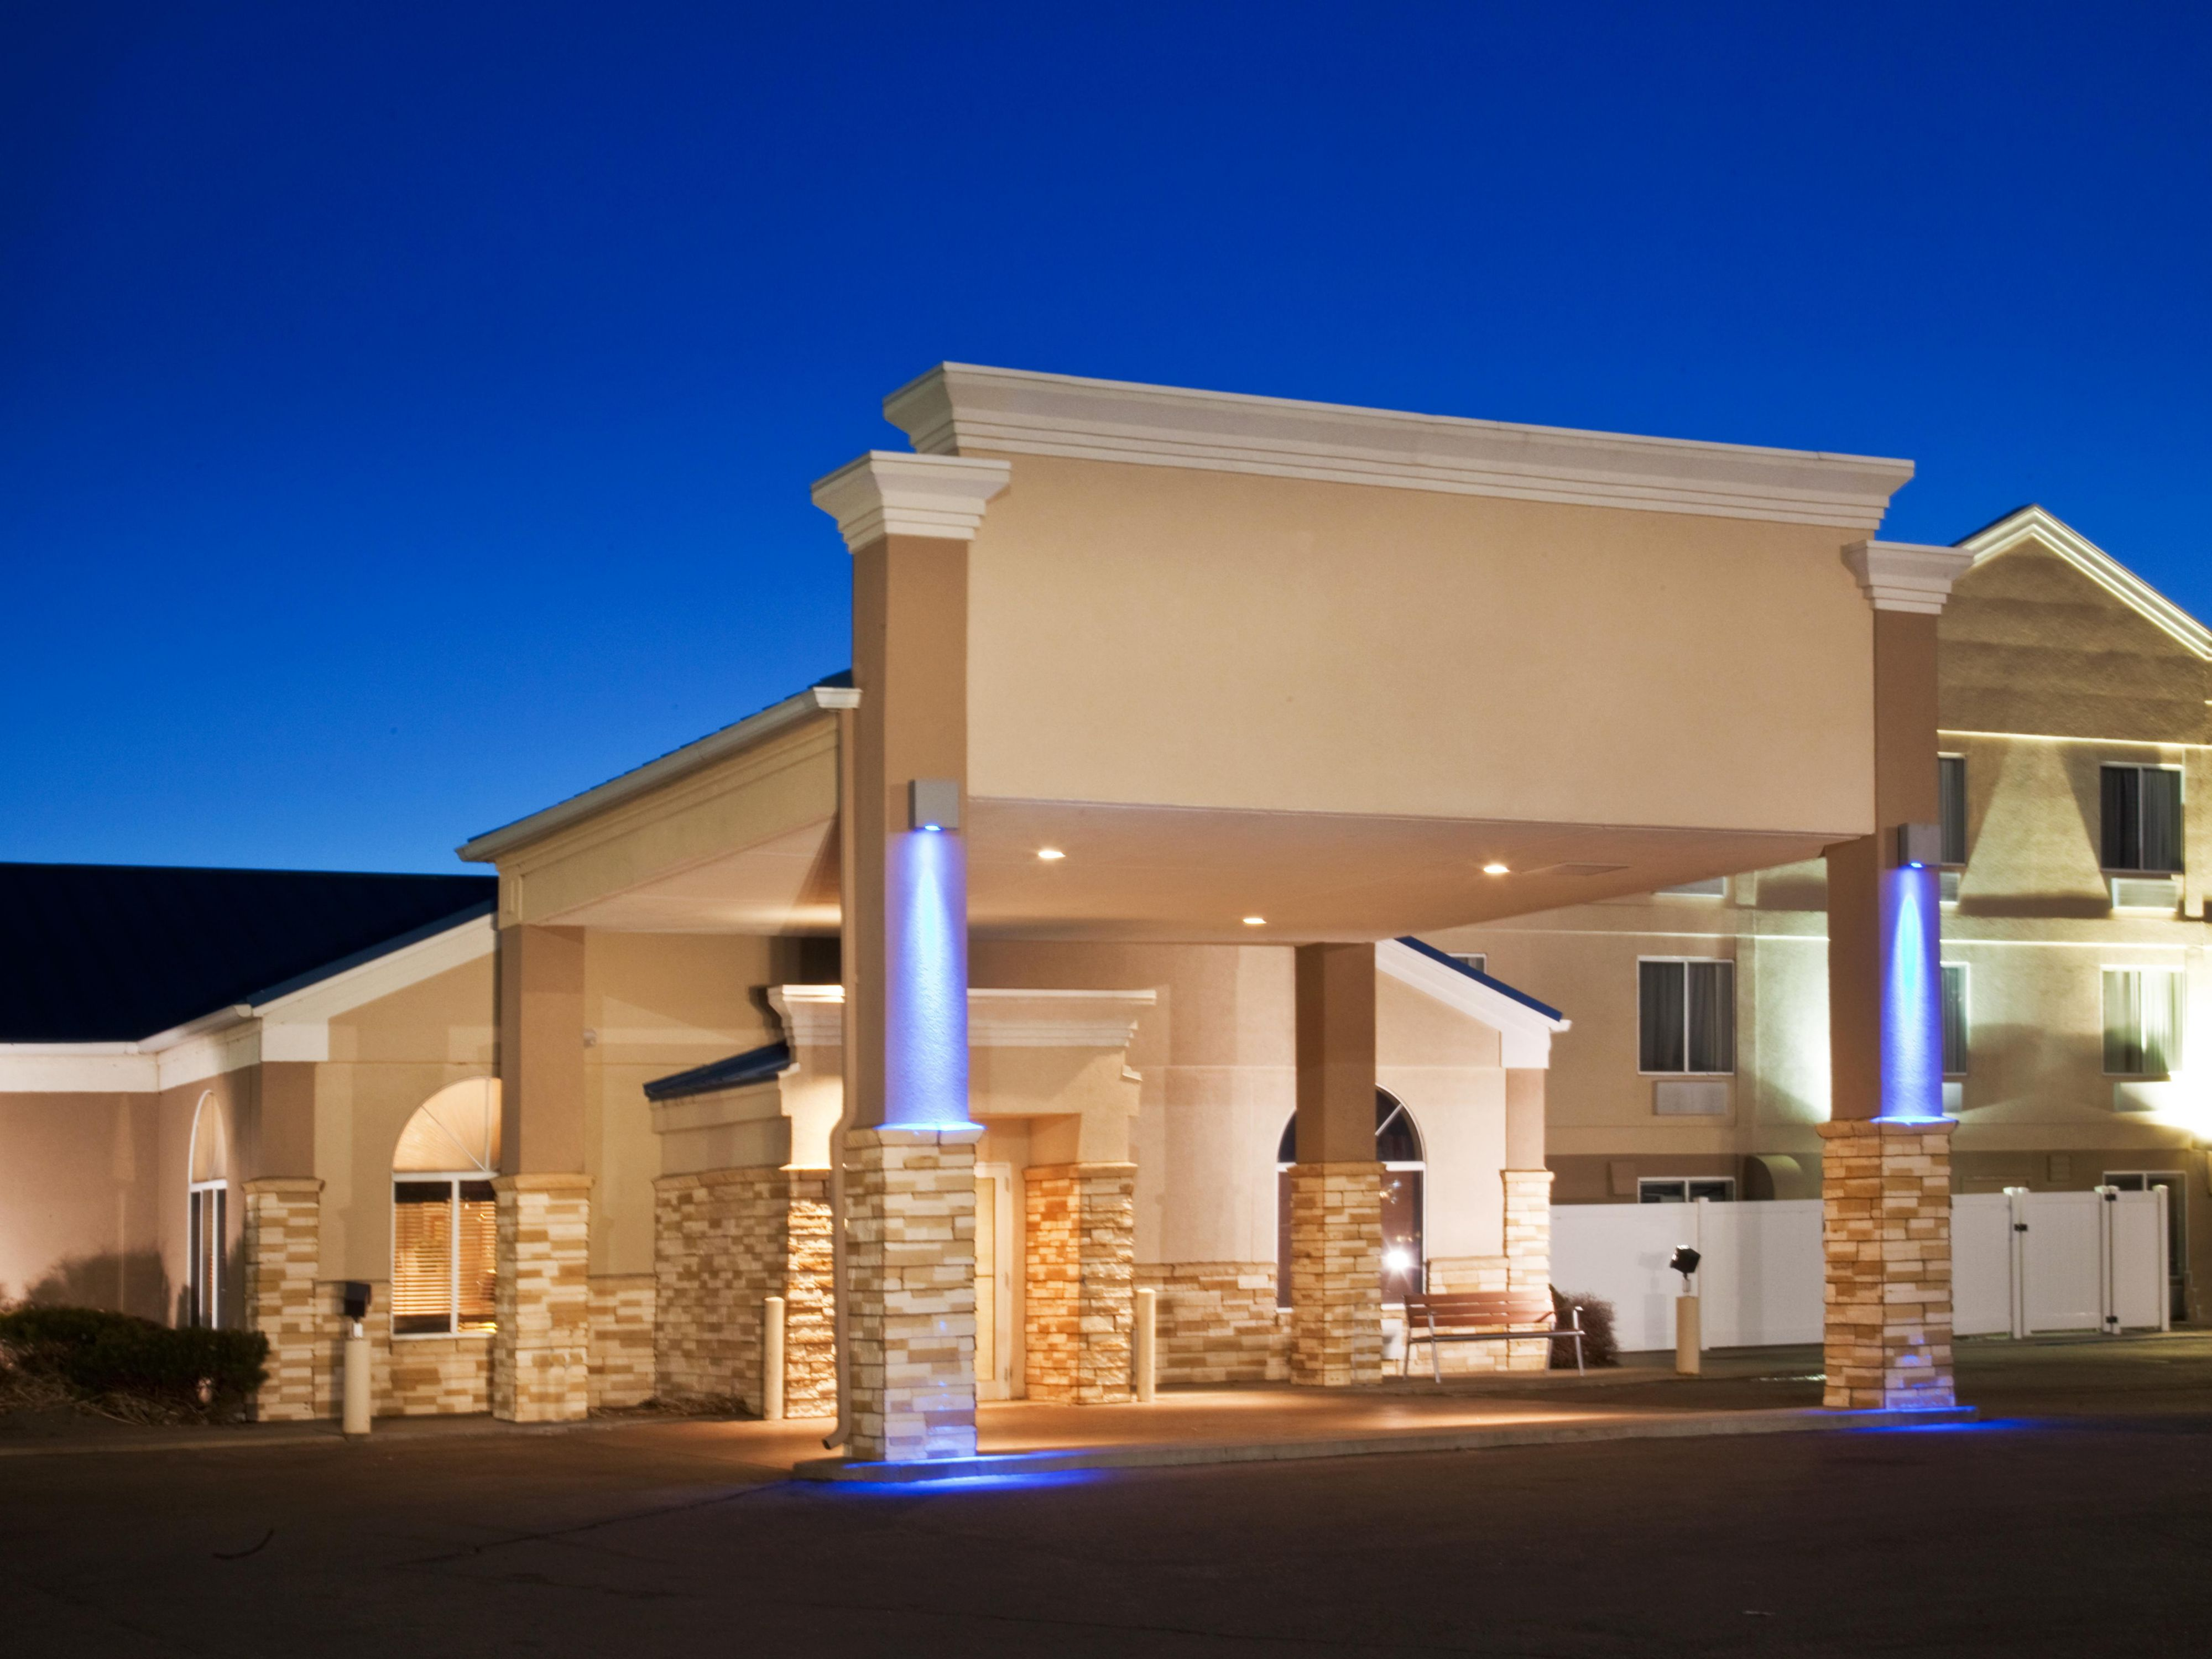 Holiday Inn & Suites North Platte Welcoming Main Entrance